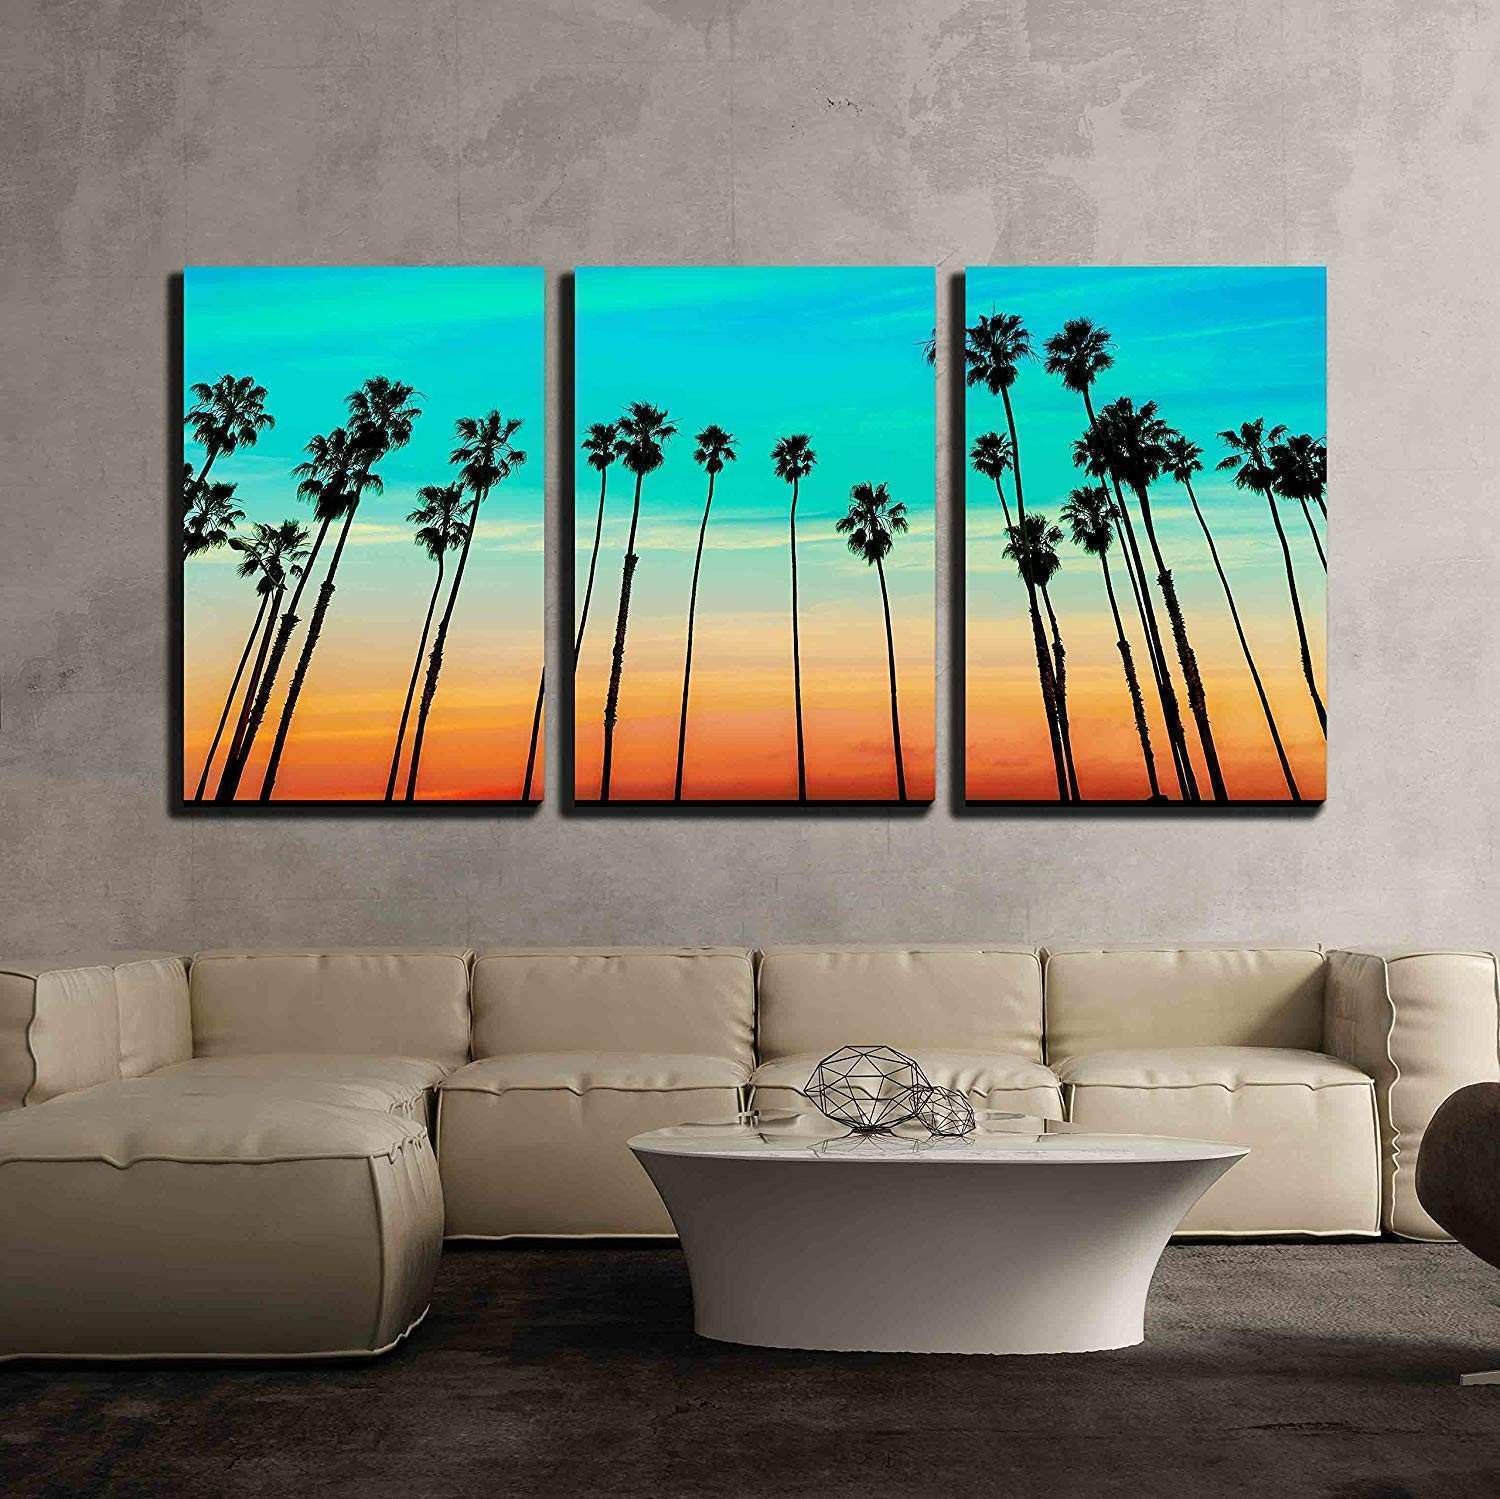 Amazon wall26 3 Piece Canvas Wall Art California sunset